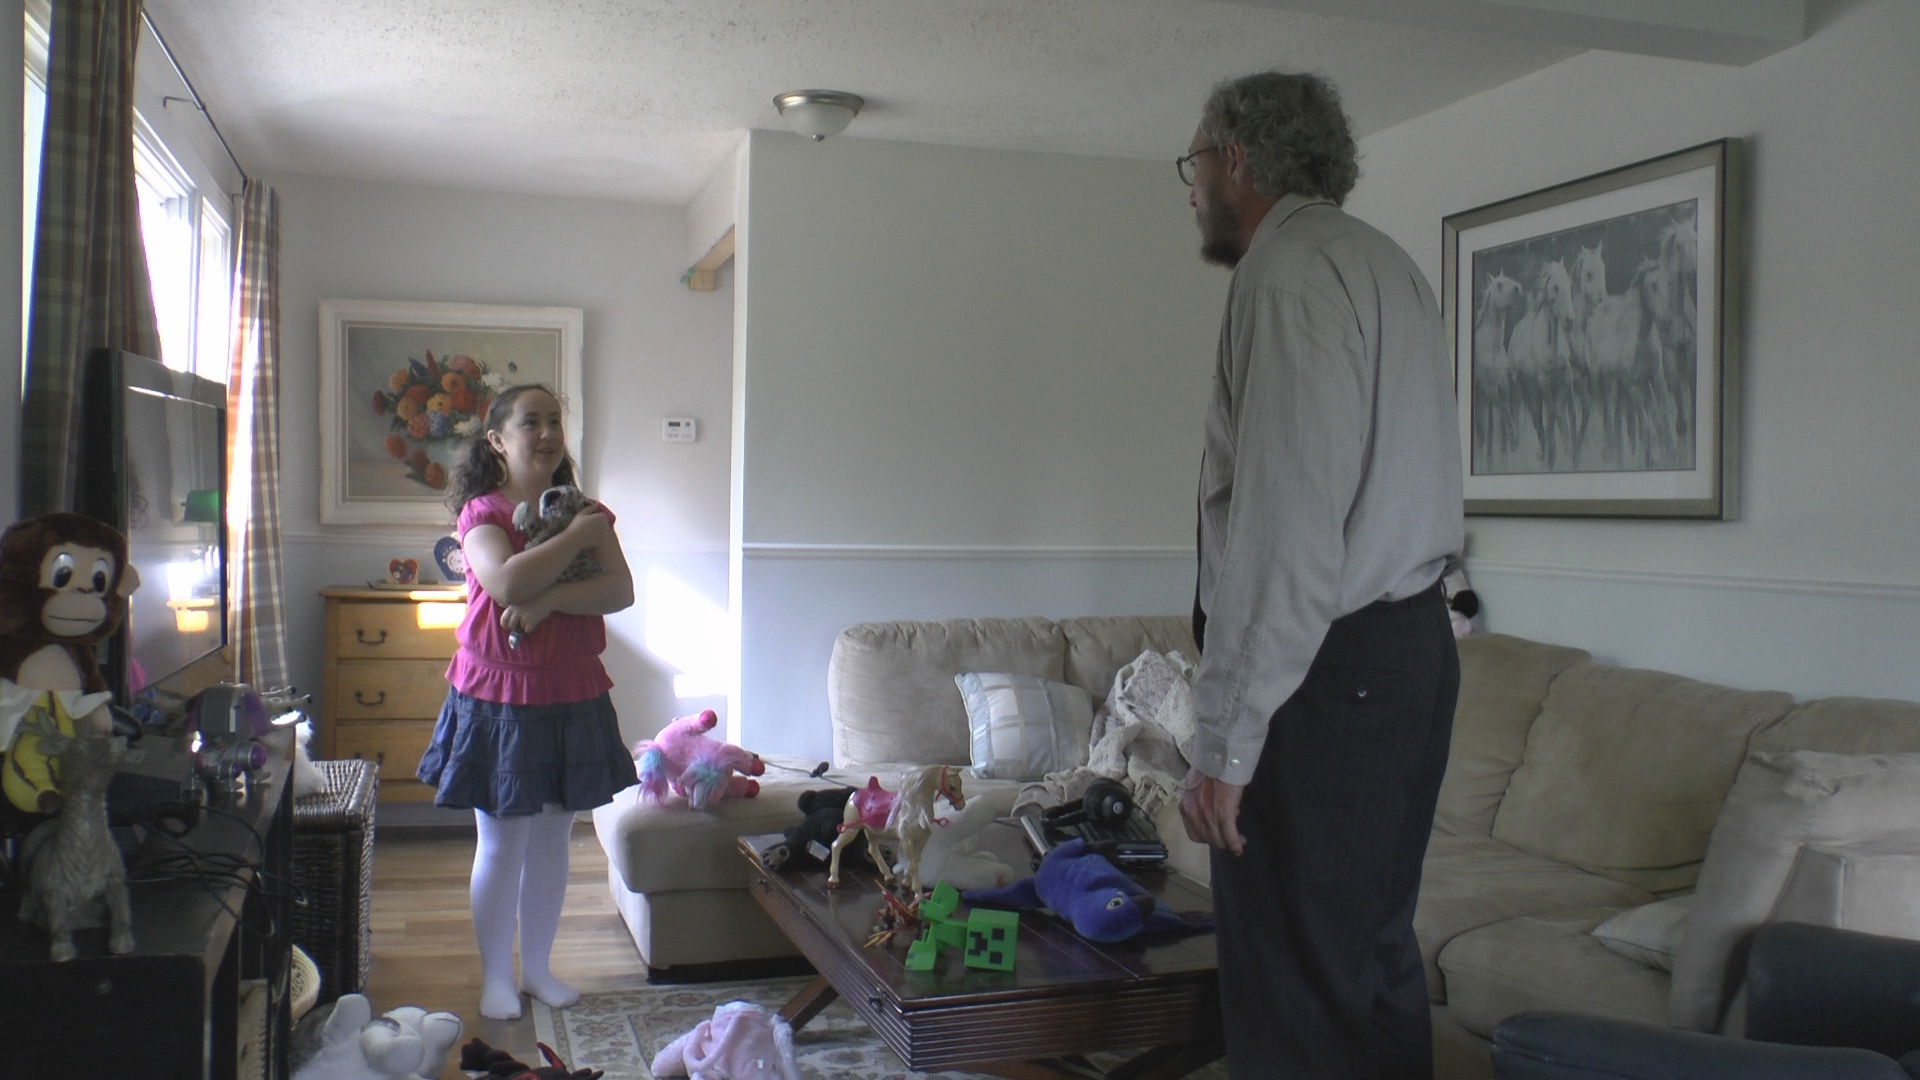 A father suddenly wants his daughter to either pay rent or move out... But is she ready at such a young age?